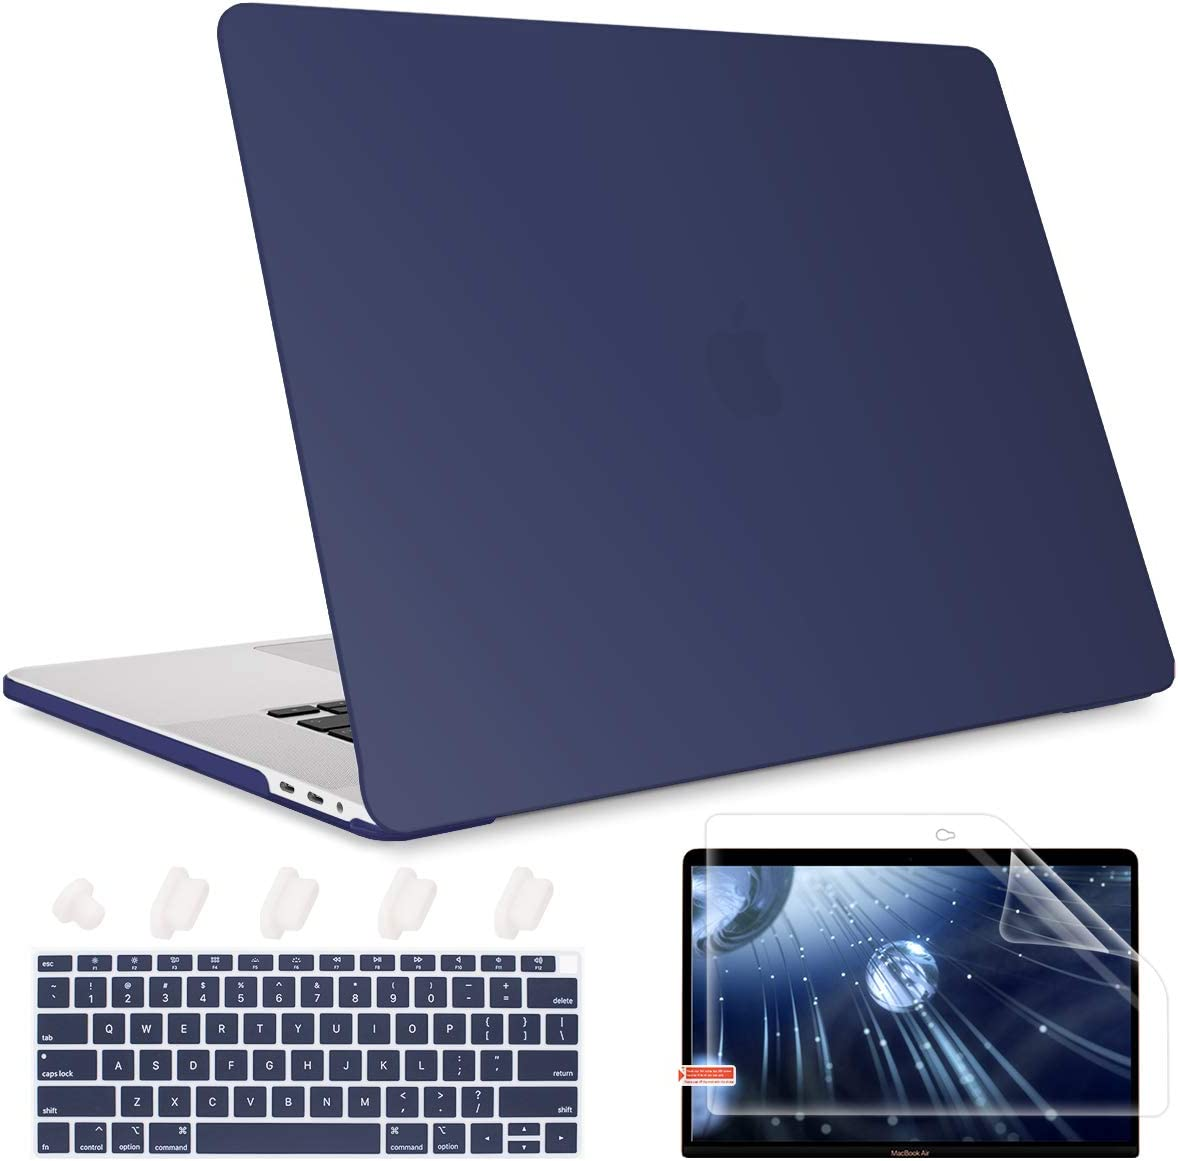 May Chen Rubberized Frosted Matte Hard Shell Cover, Plastic Keyboard Cover For New MacBook Air 13 with Retina Dispaly Fits Touch Id A1932/A2179 2018 2019 2020 Release, Navy Blue